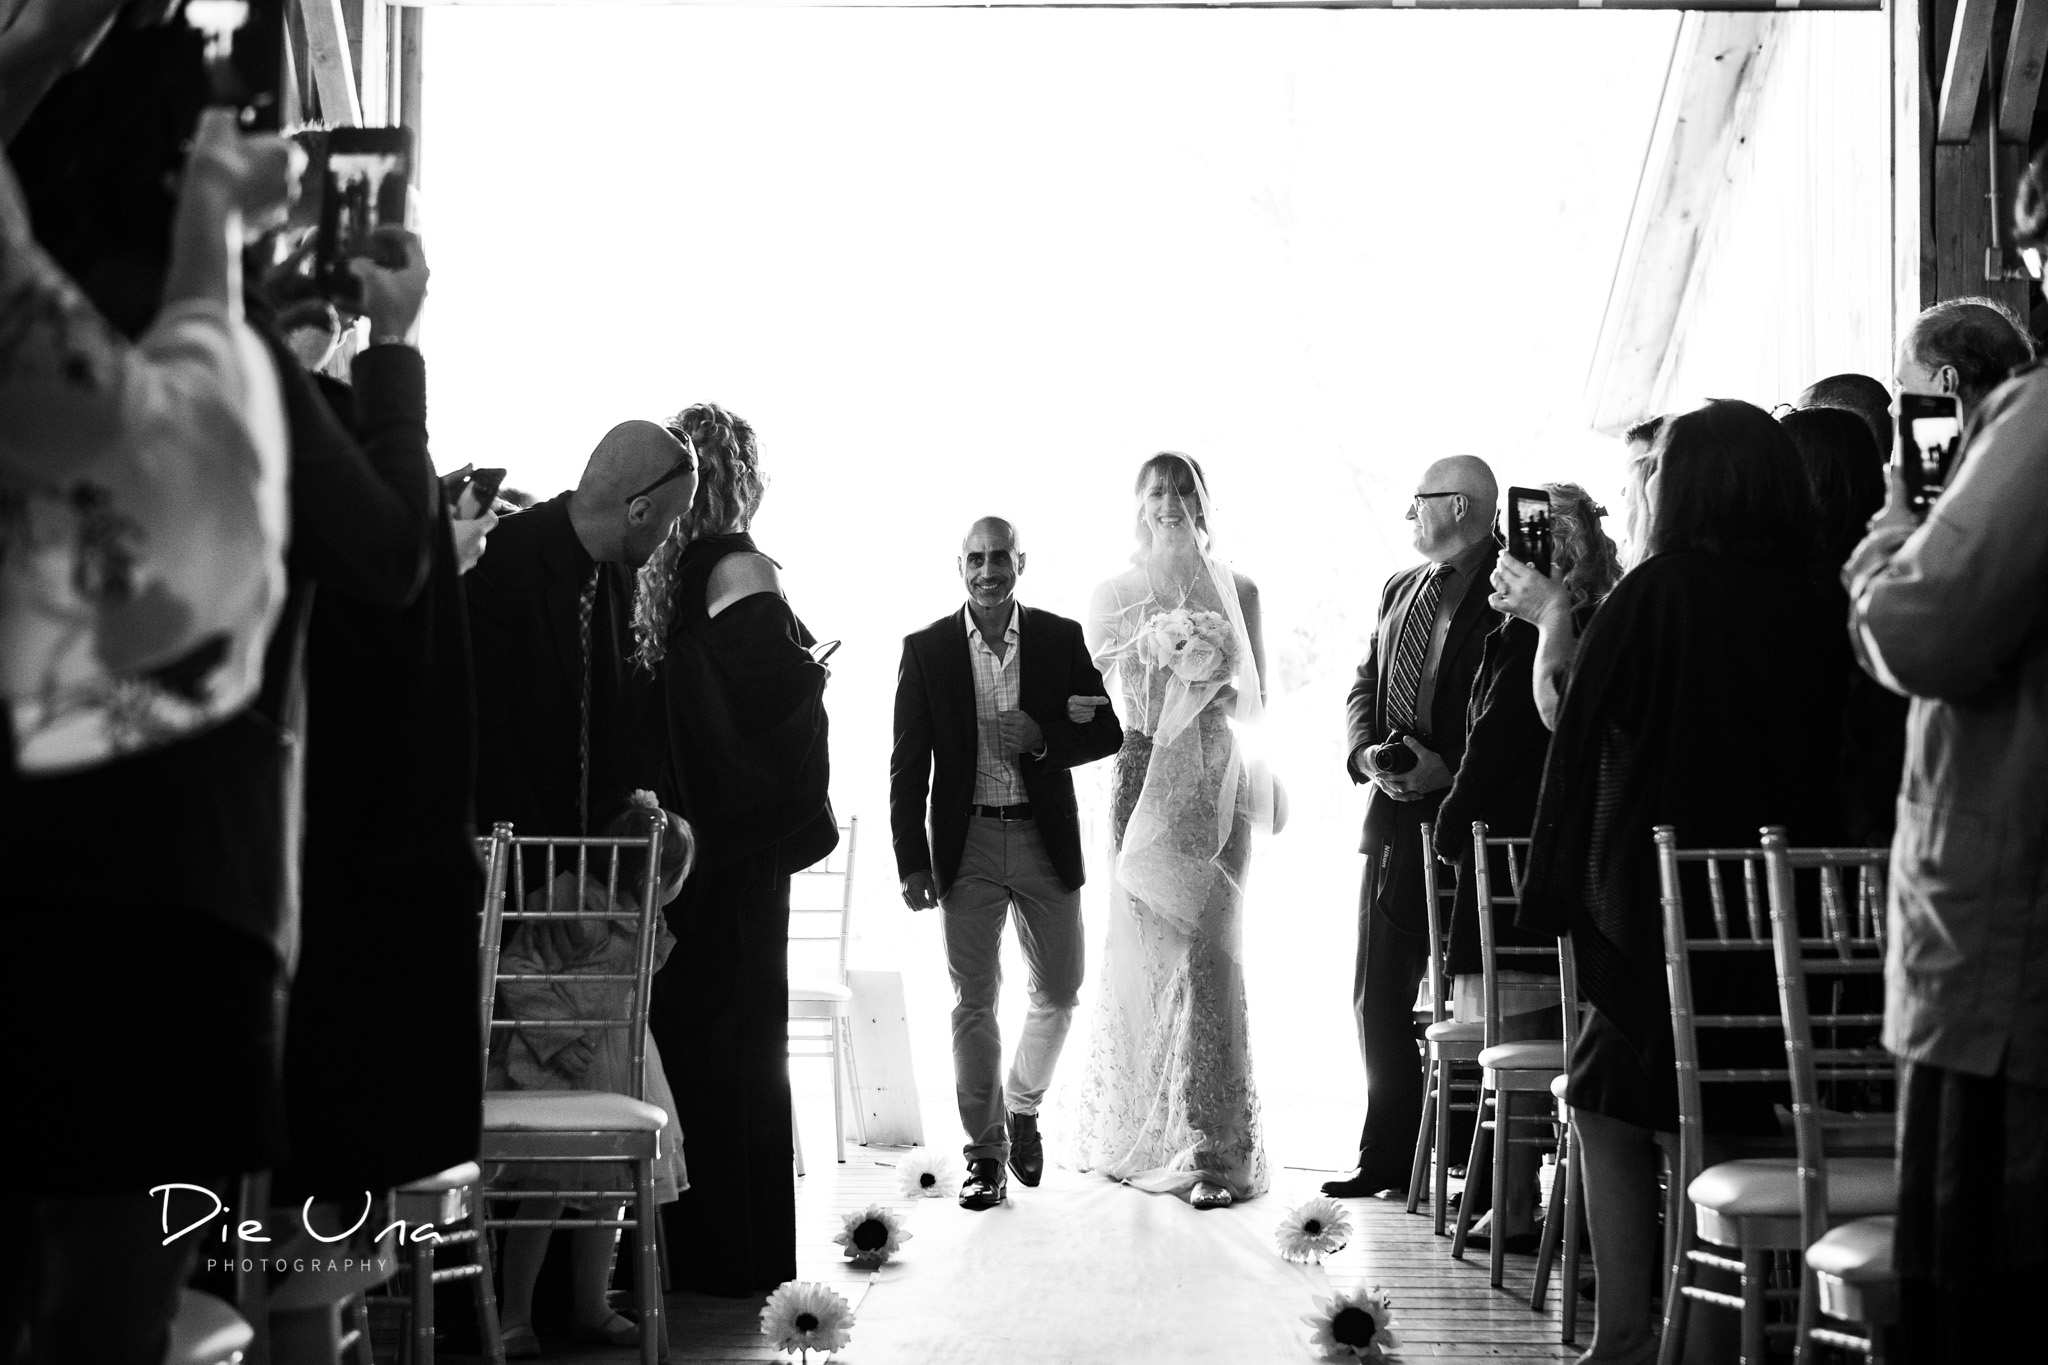 bride and father of the bride walking down the aisle during wedding ceremony black and whte wedding photography.jpg